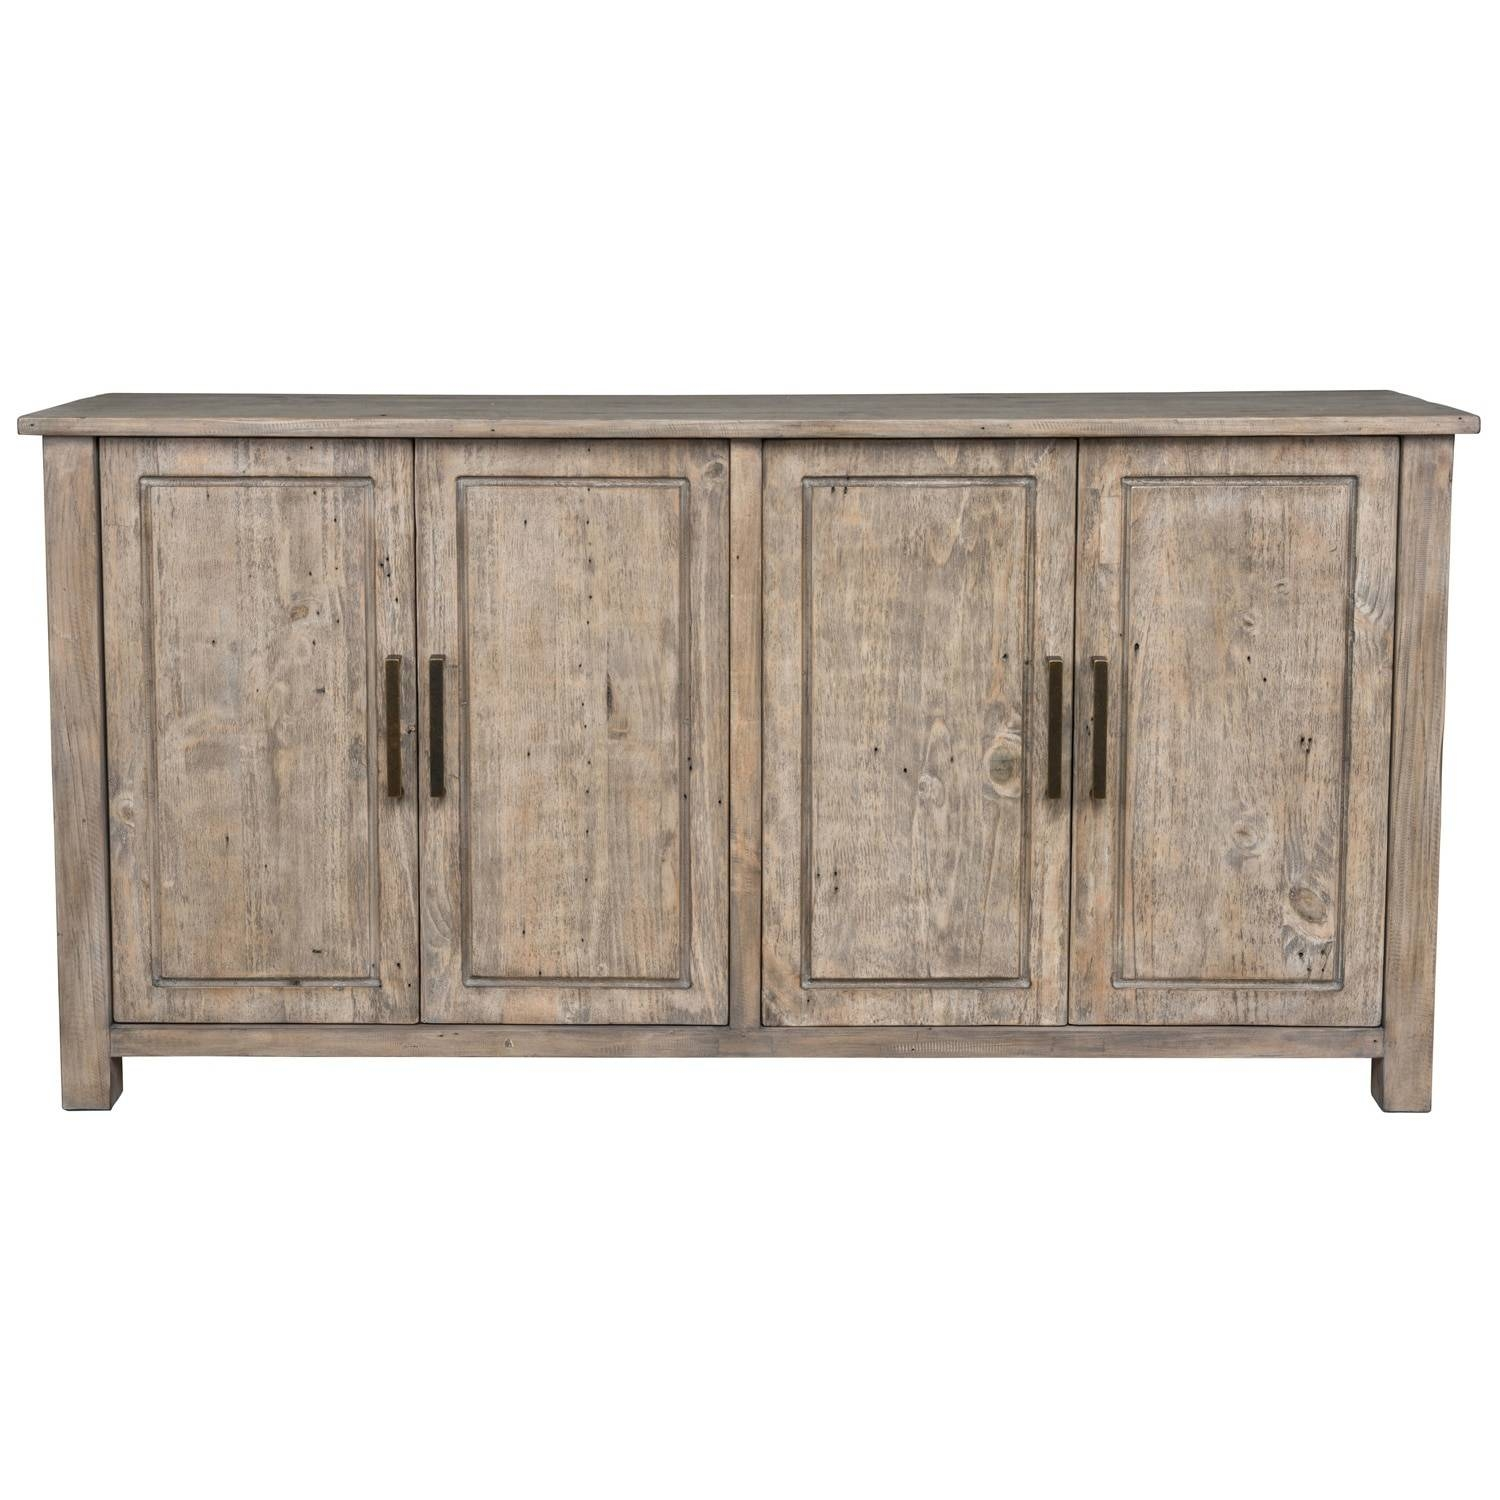 Aires Reclaimed Wood 72 Inch Sideboardkosas Home – Free Throughout Most Current 14 Inch Deep Sideboards (#3 of 15)